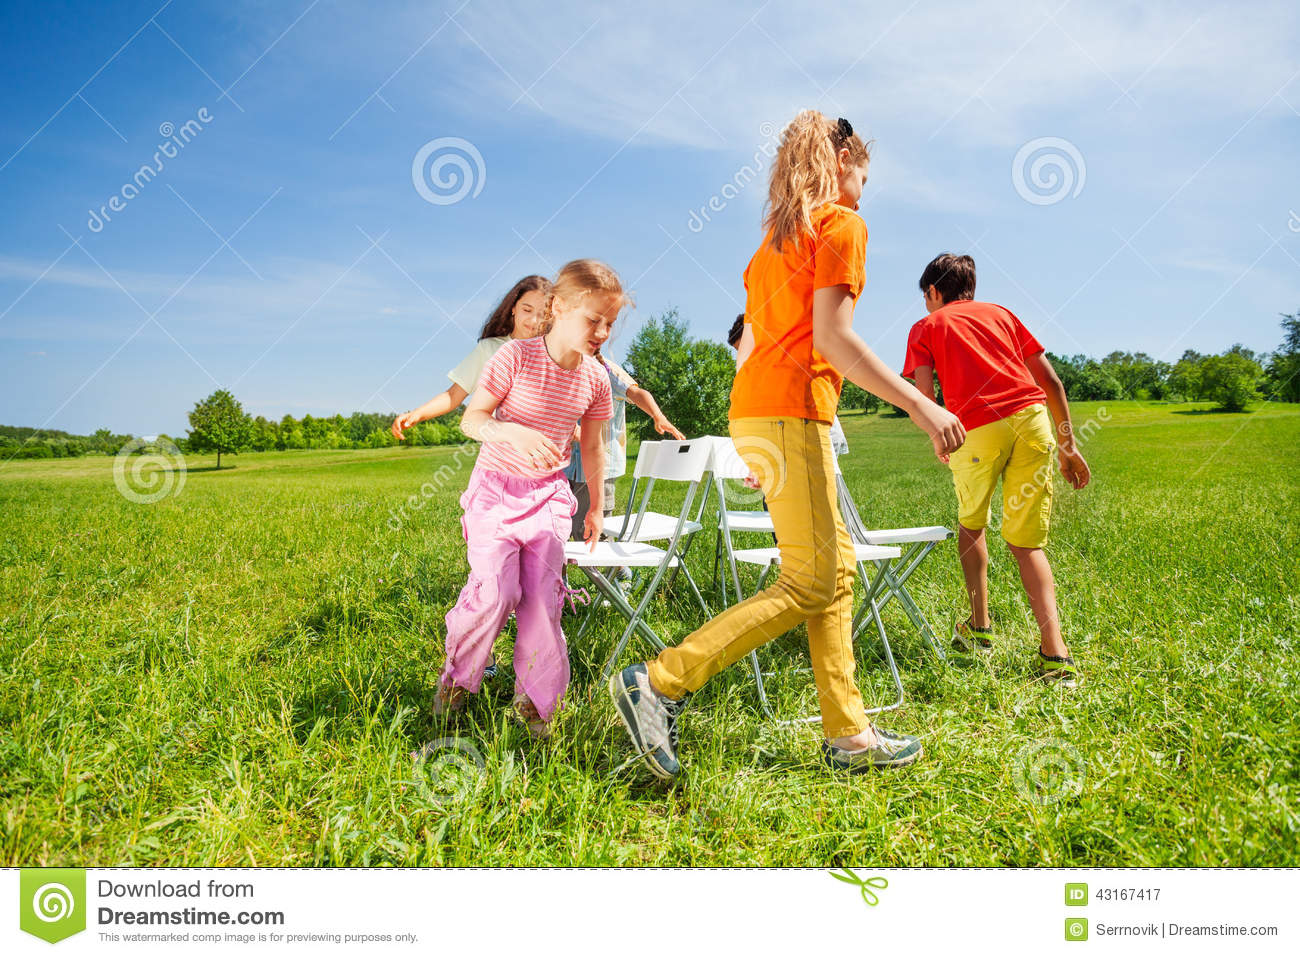 Children run around chairs playing a game outside stock for Sillas para jugar a la play